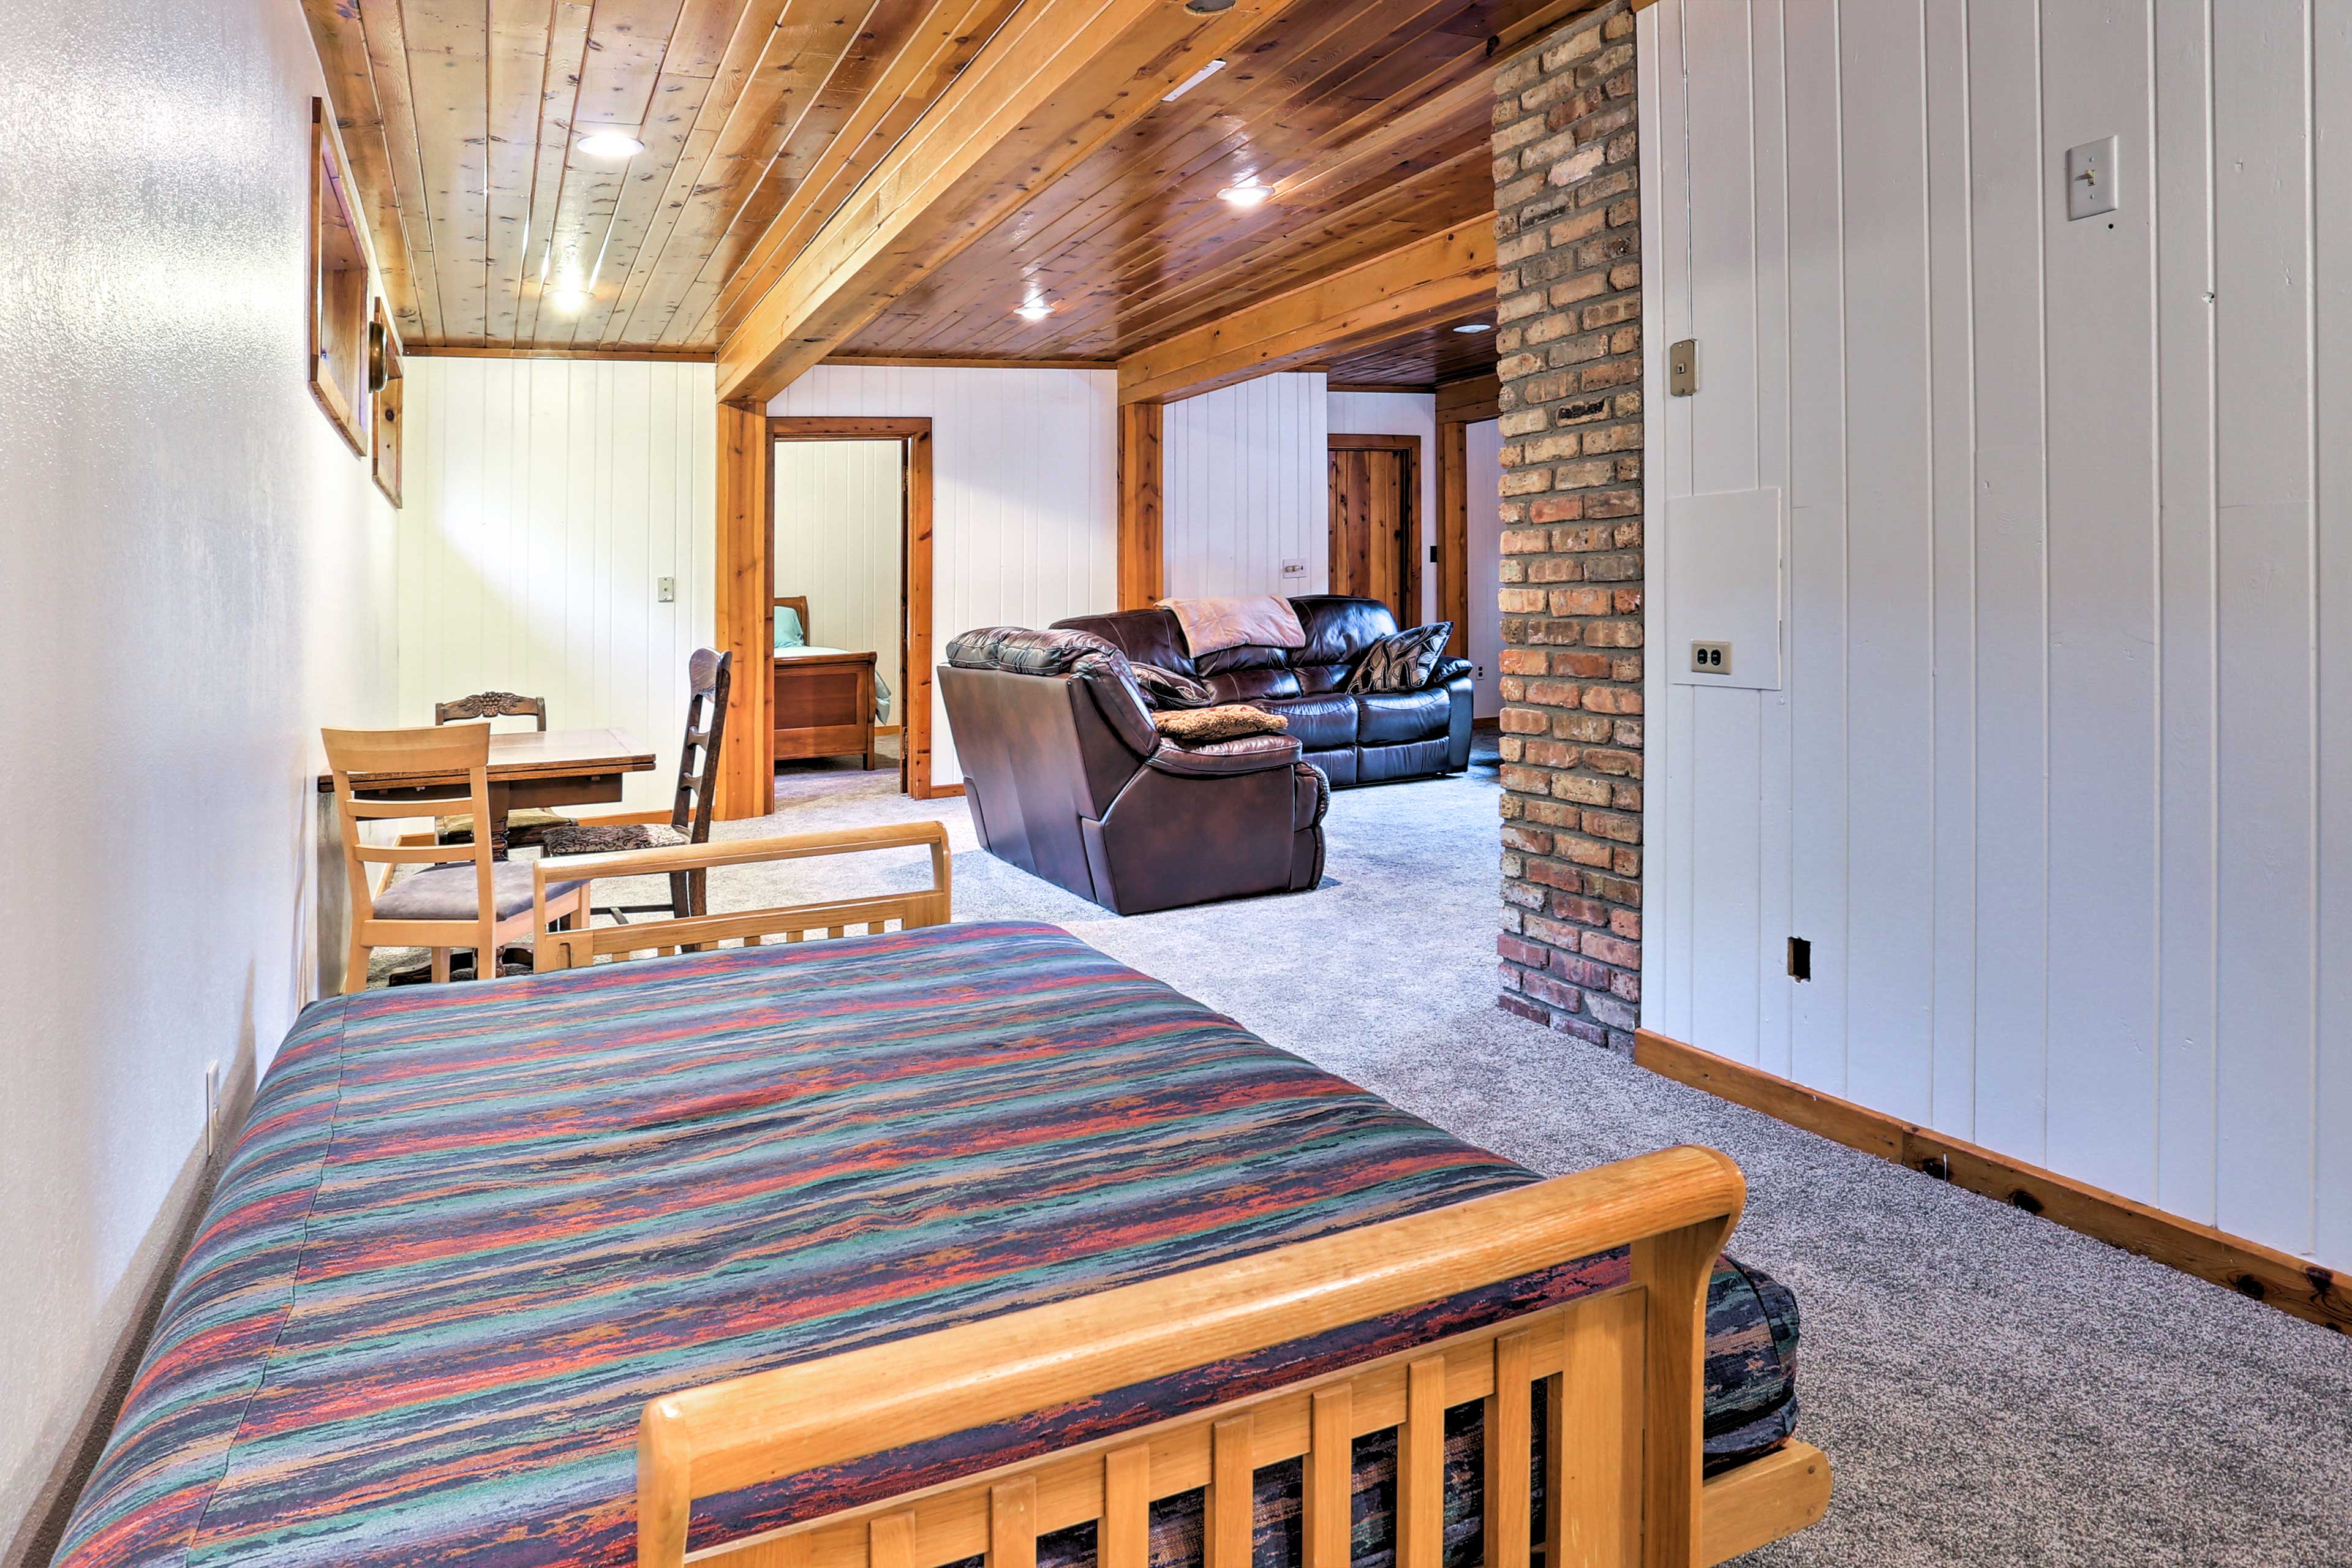 The downstairs space also includes a futon for addition sleeping.